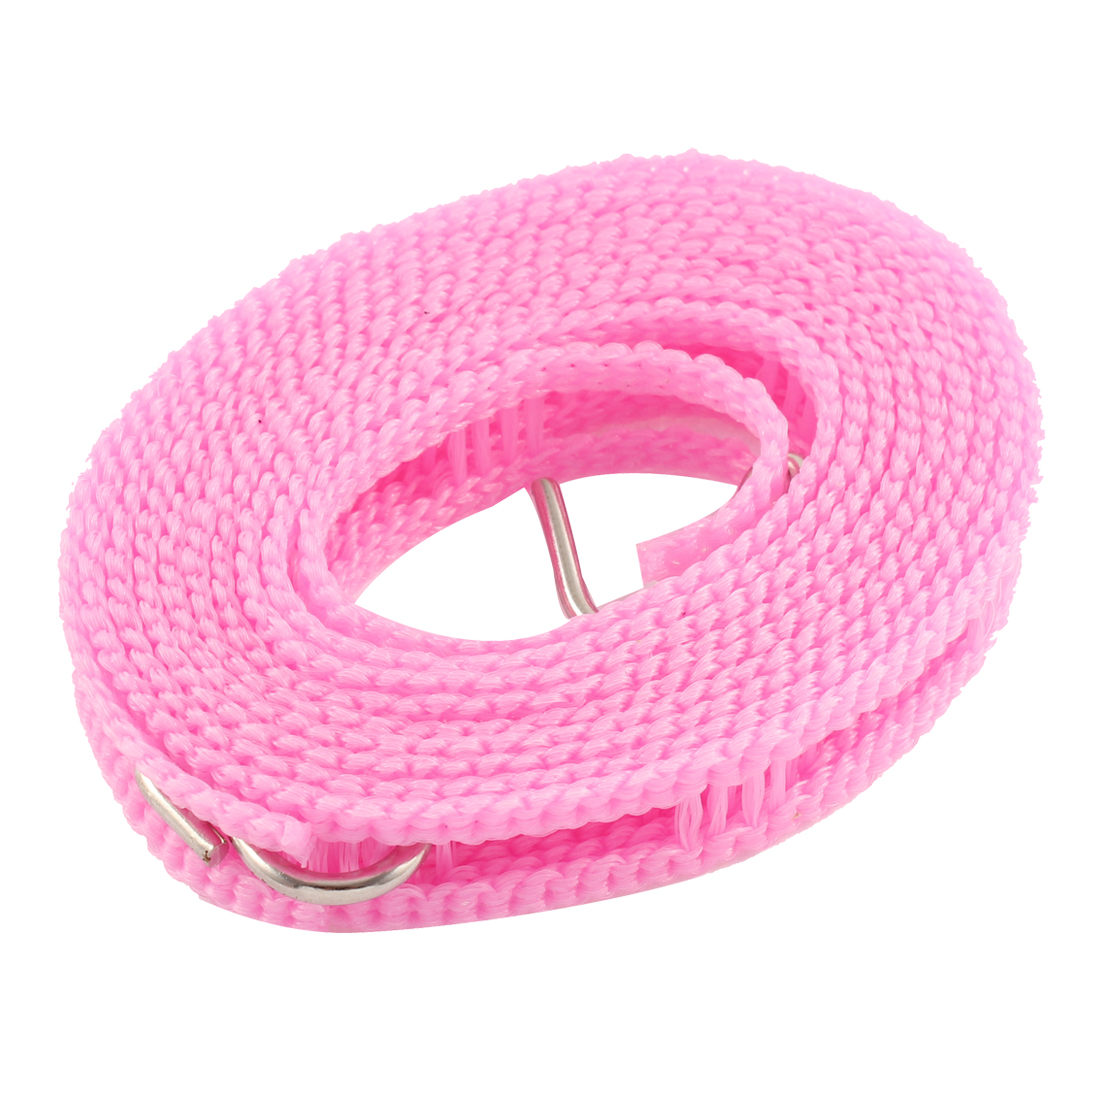 Home Portable Clothes Hanger Windproof Foldable Clothesline Pink 2M 6 Feet